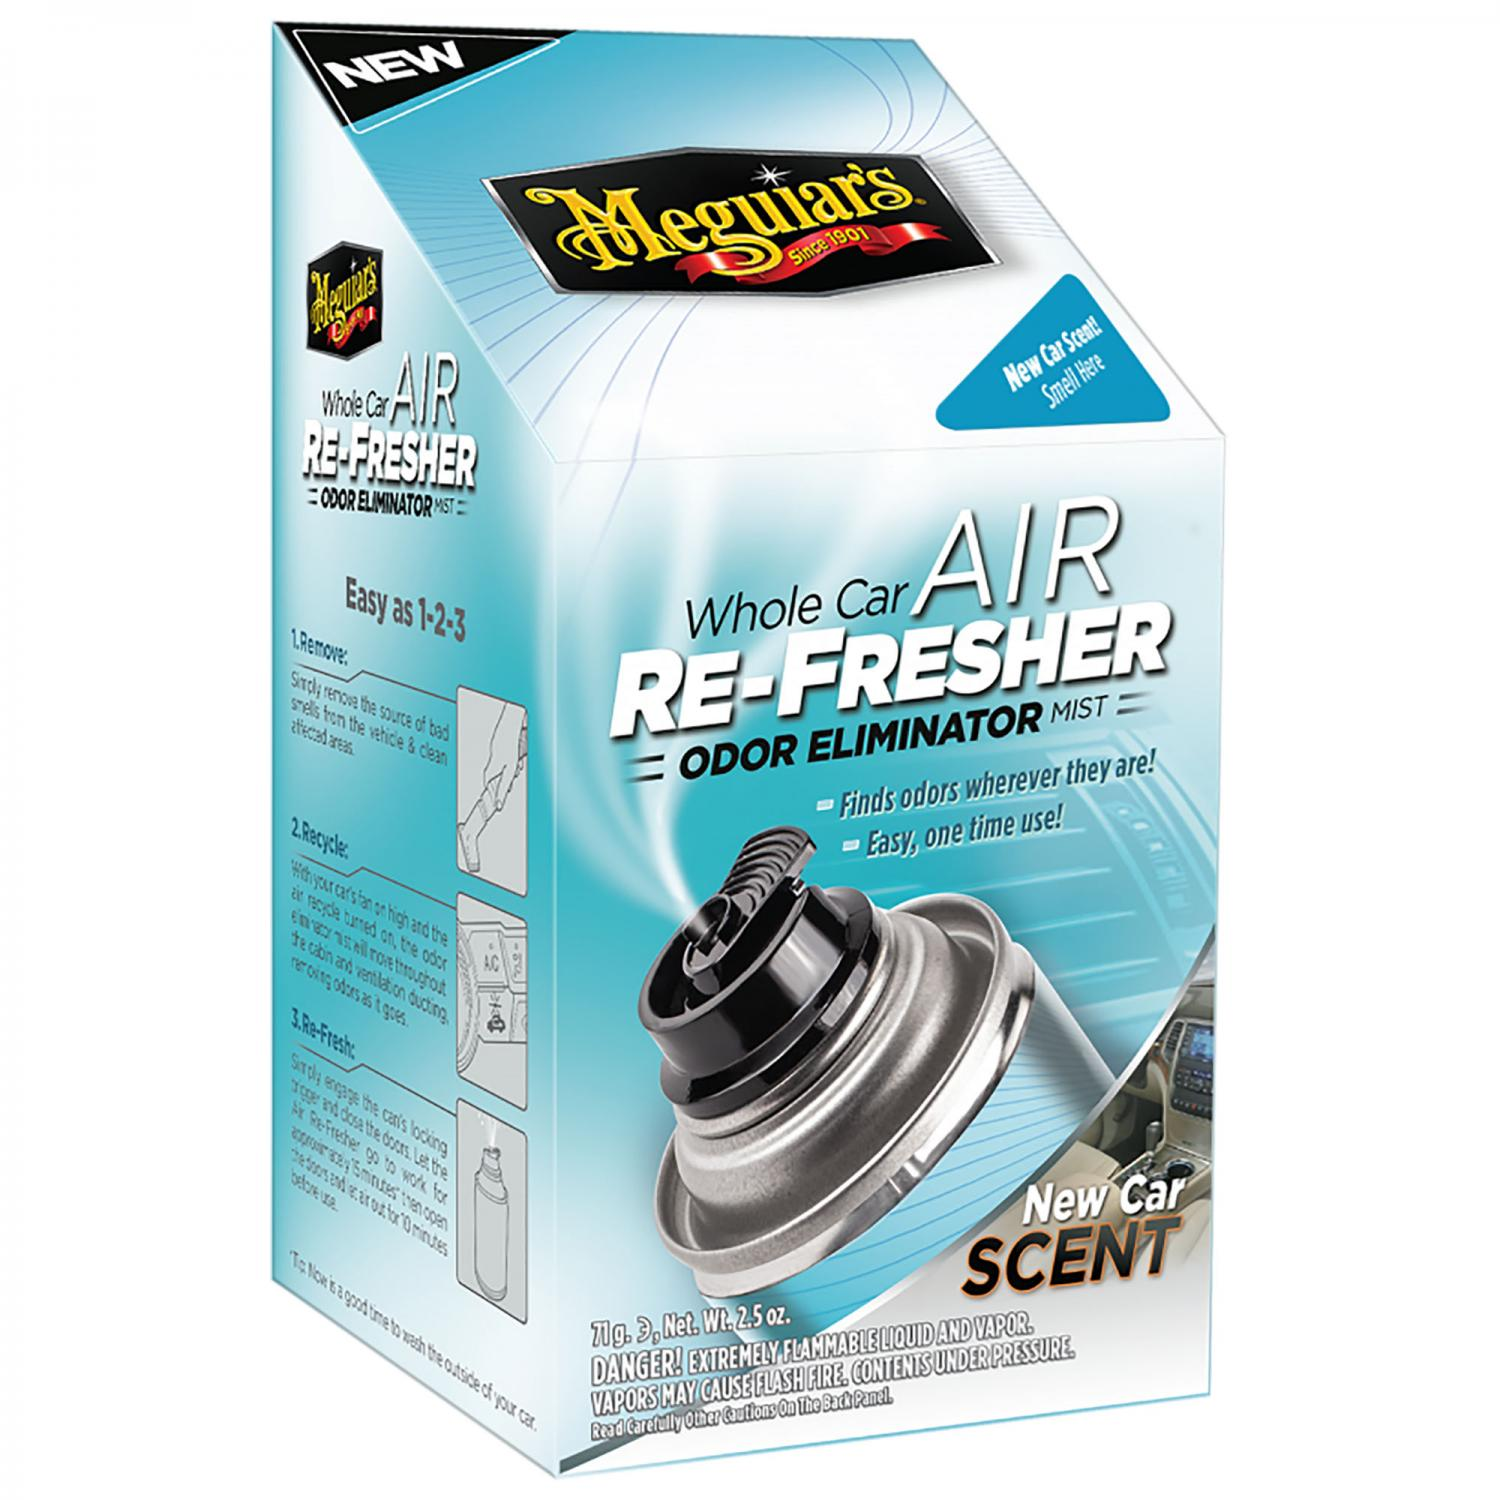 Air RE-FRESHER New Car Scent Meguiars